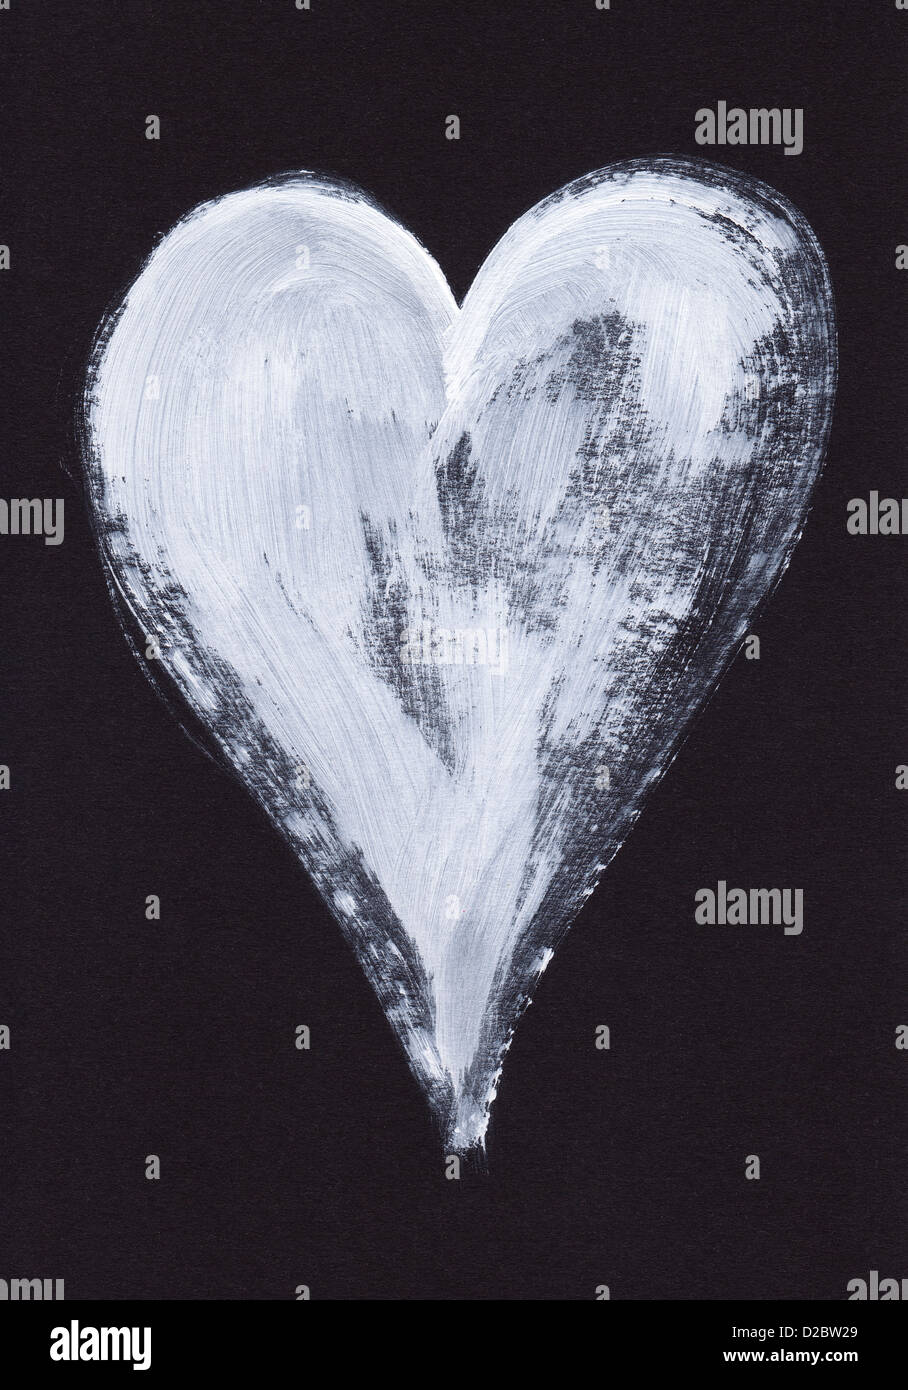 White heart acrylic painting on black paper stock photo 53121553